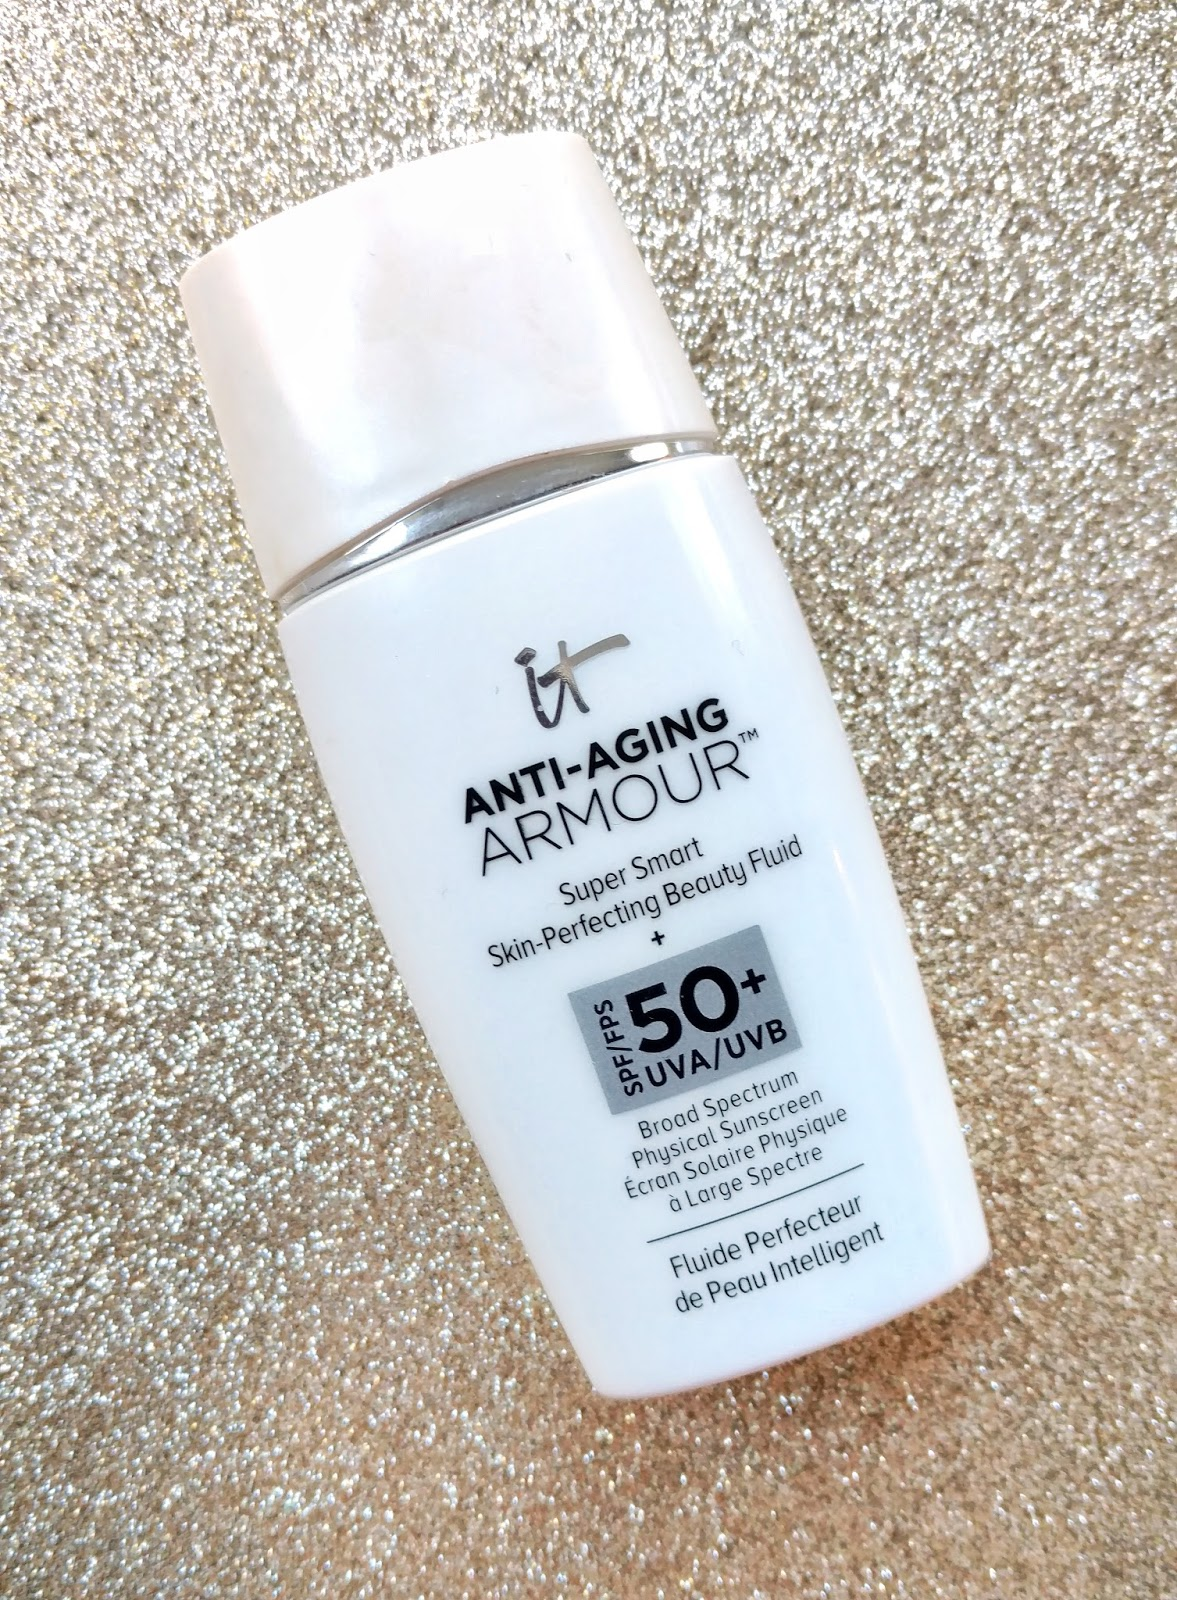 Anti Aging Armour by IT Cosmetics #3